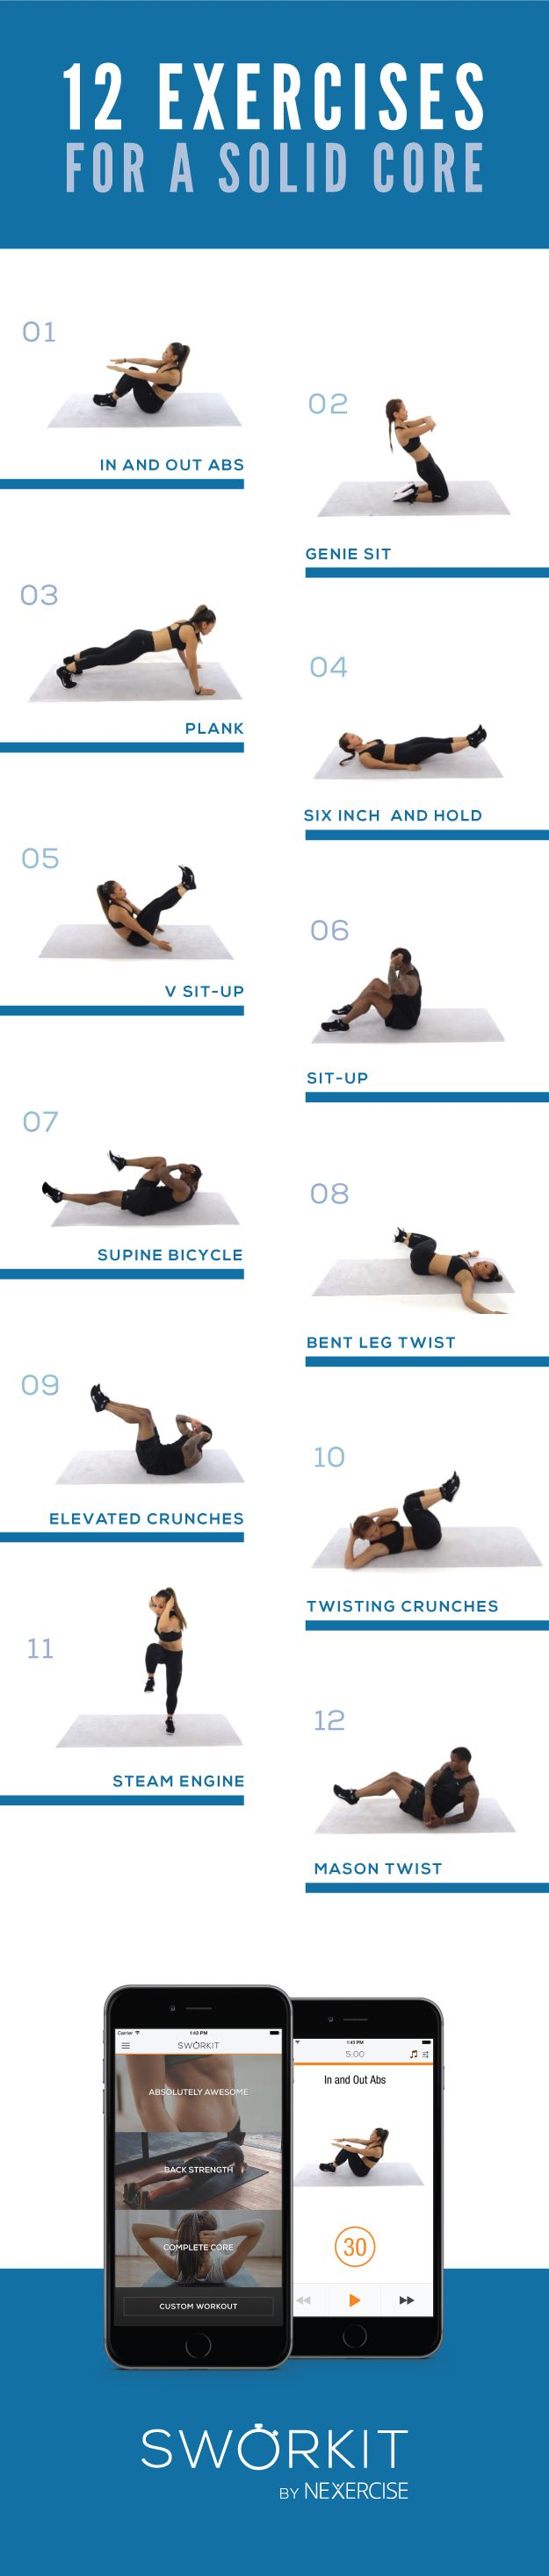 These highly effective exercises are part of our brand new Abs & Core Sworkit app that is now available for iOS in the App Store. With three distinct workouts that target your Abs, Back, and Core, you can focus on building that core you have always wanted.